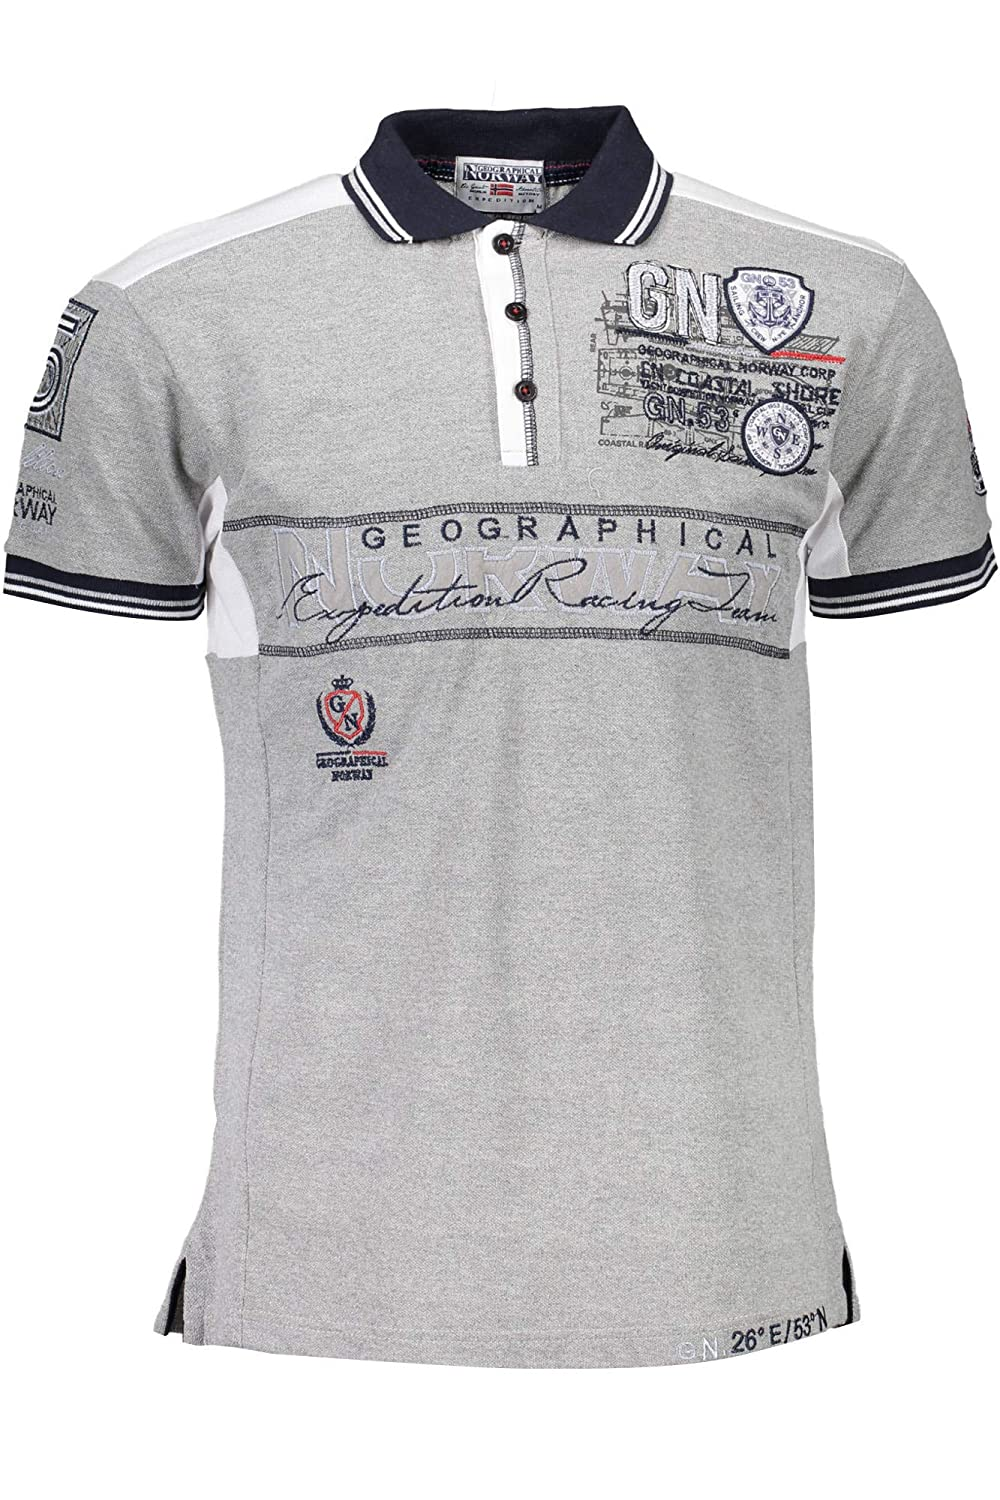 GEOGRAPHICAL NORWAY POLO MANICHE CORTE Uomo: Amazon.es: Ropa y ...